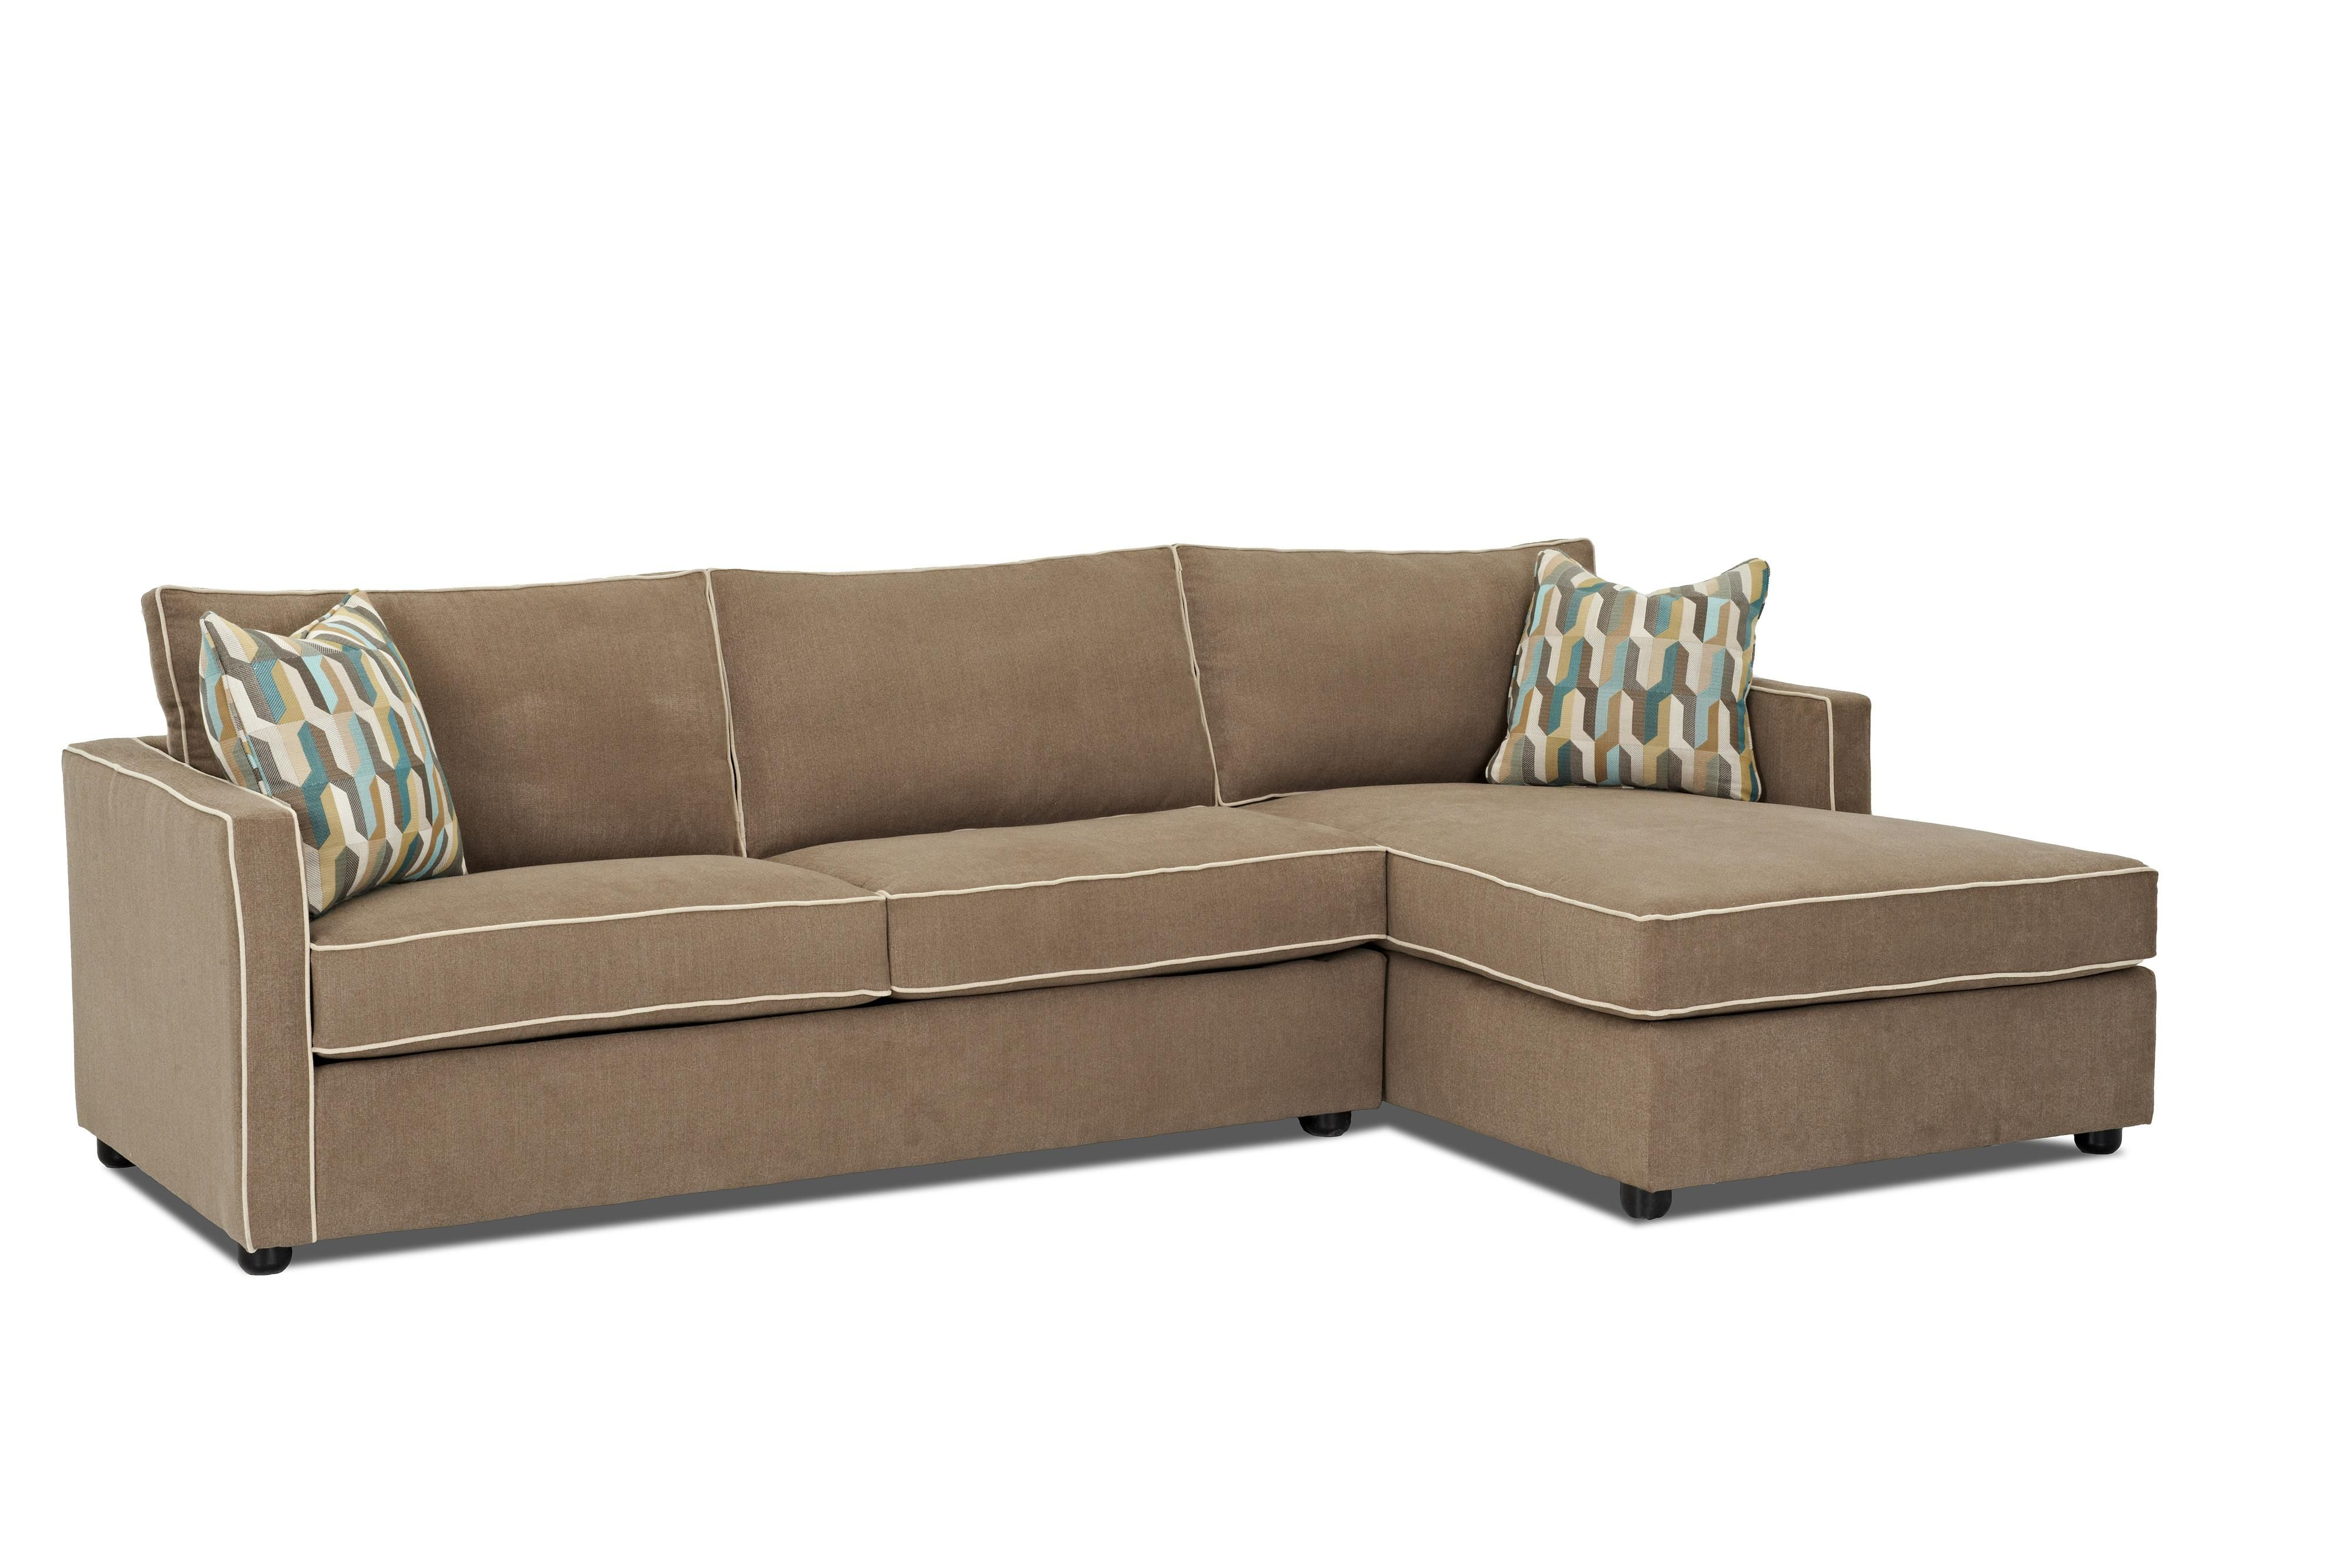 Savvy Portland Chaise Sectional Sleeper Sofa Full Sleepers In Seattle